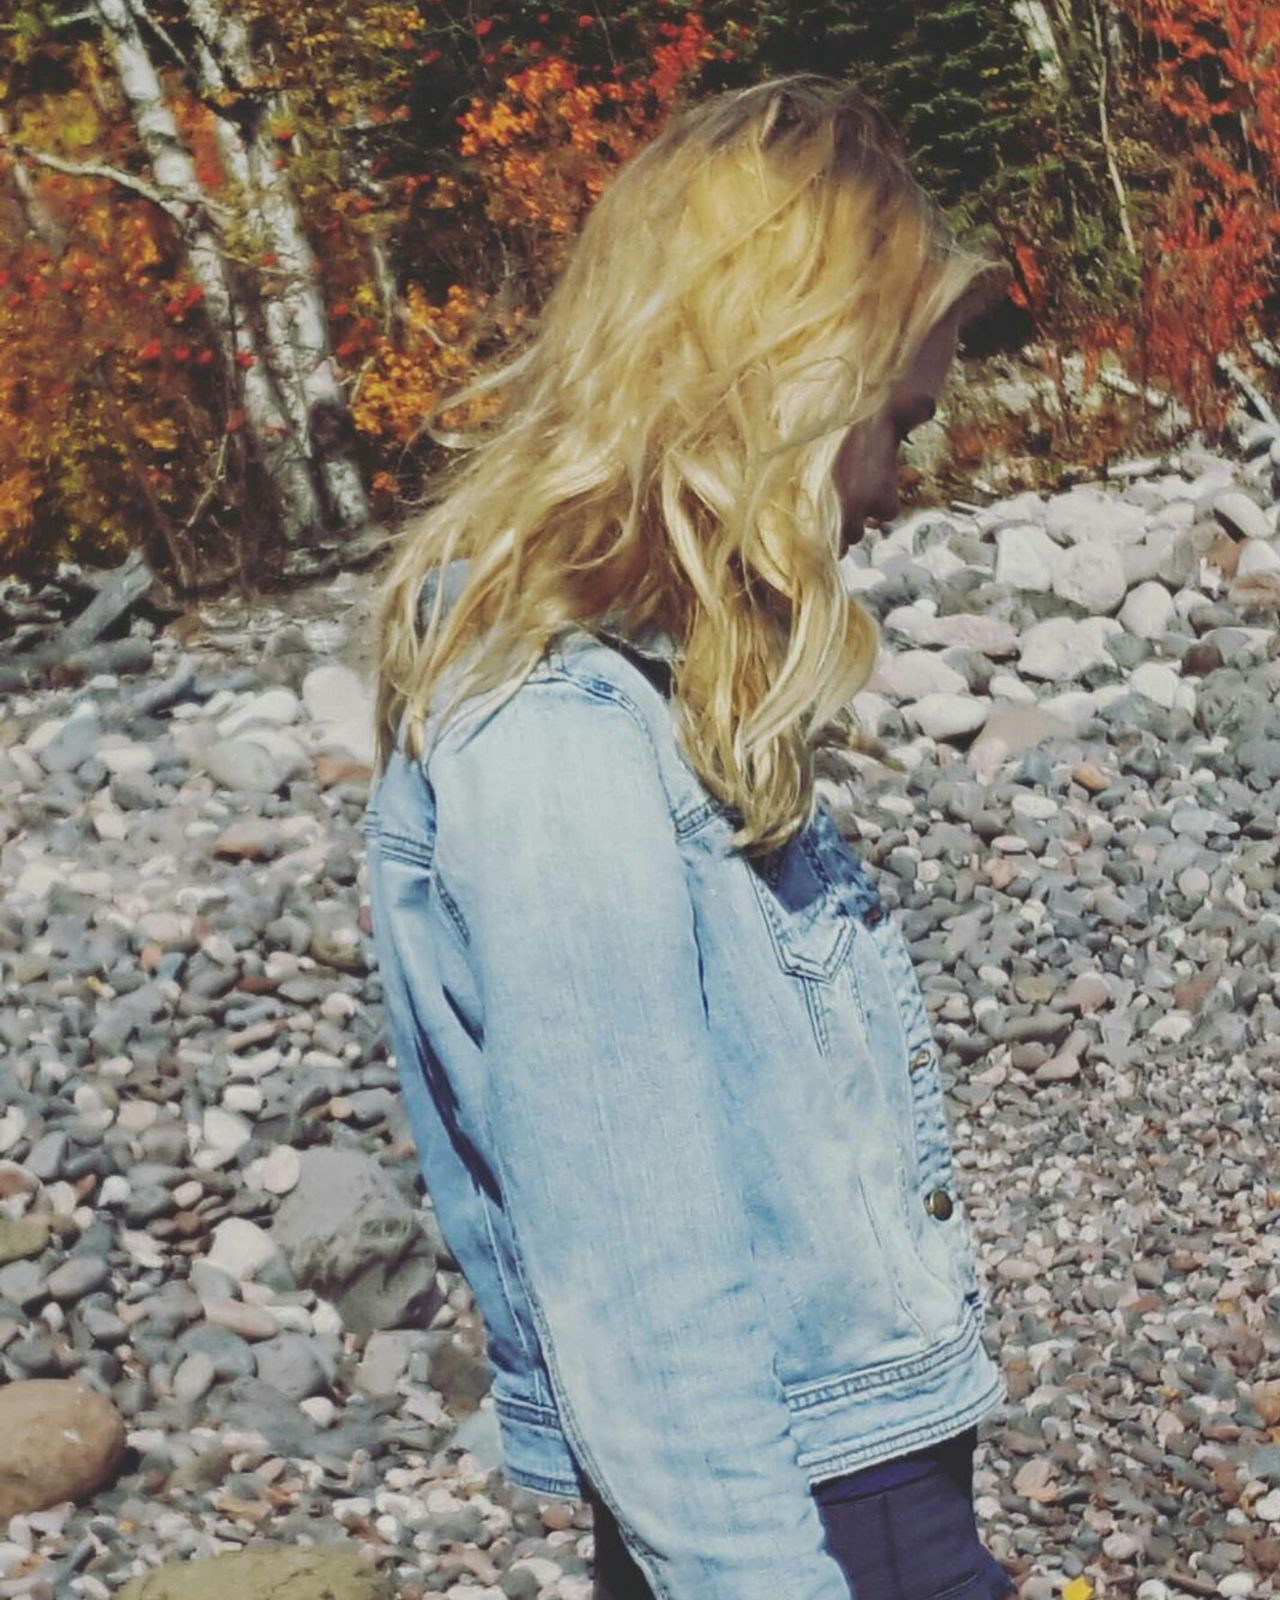 Straight Hair Outdoors Messy Fall Beauty Cabin Life Lake Superior Photoshoot Friends ❤ Nature Photography Minnesota Nature Enjoying Life Minnesota Lake Candidshot Nature Beauty In Nature Tranquility Blondes Have More Fun Finding New Frontiers Long Goodbye Amateurphotography